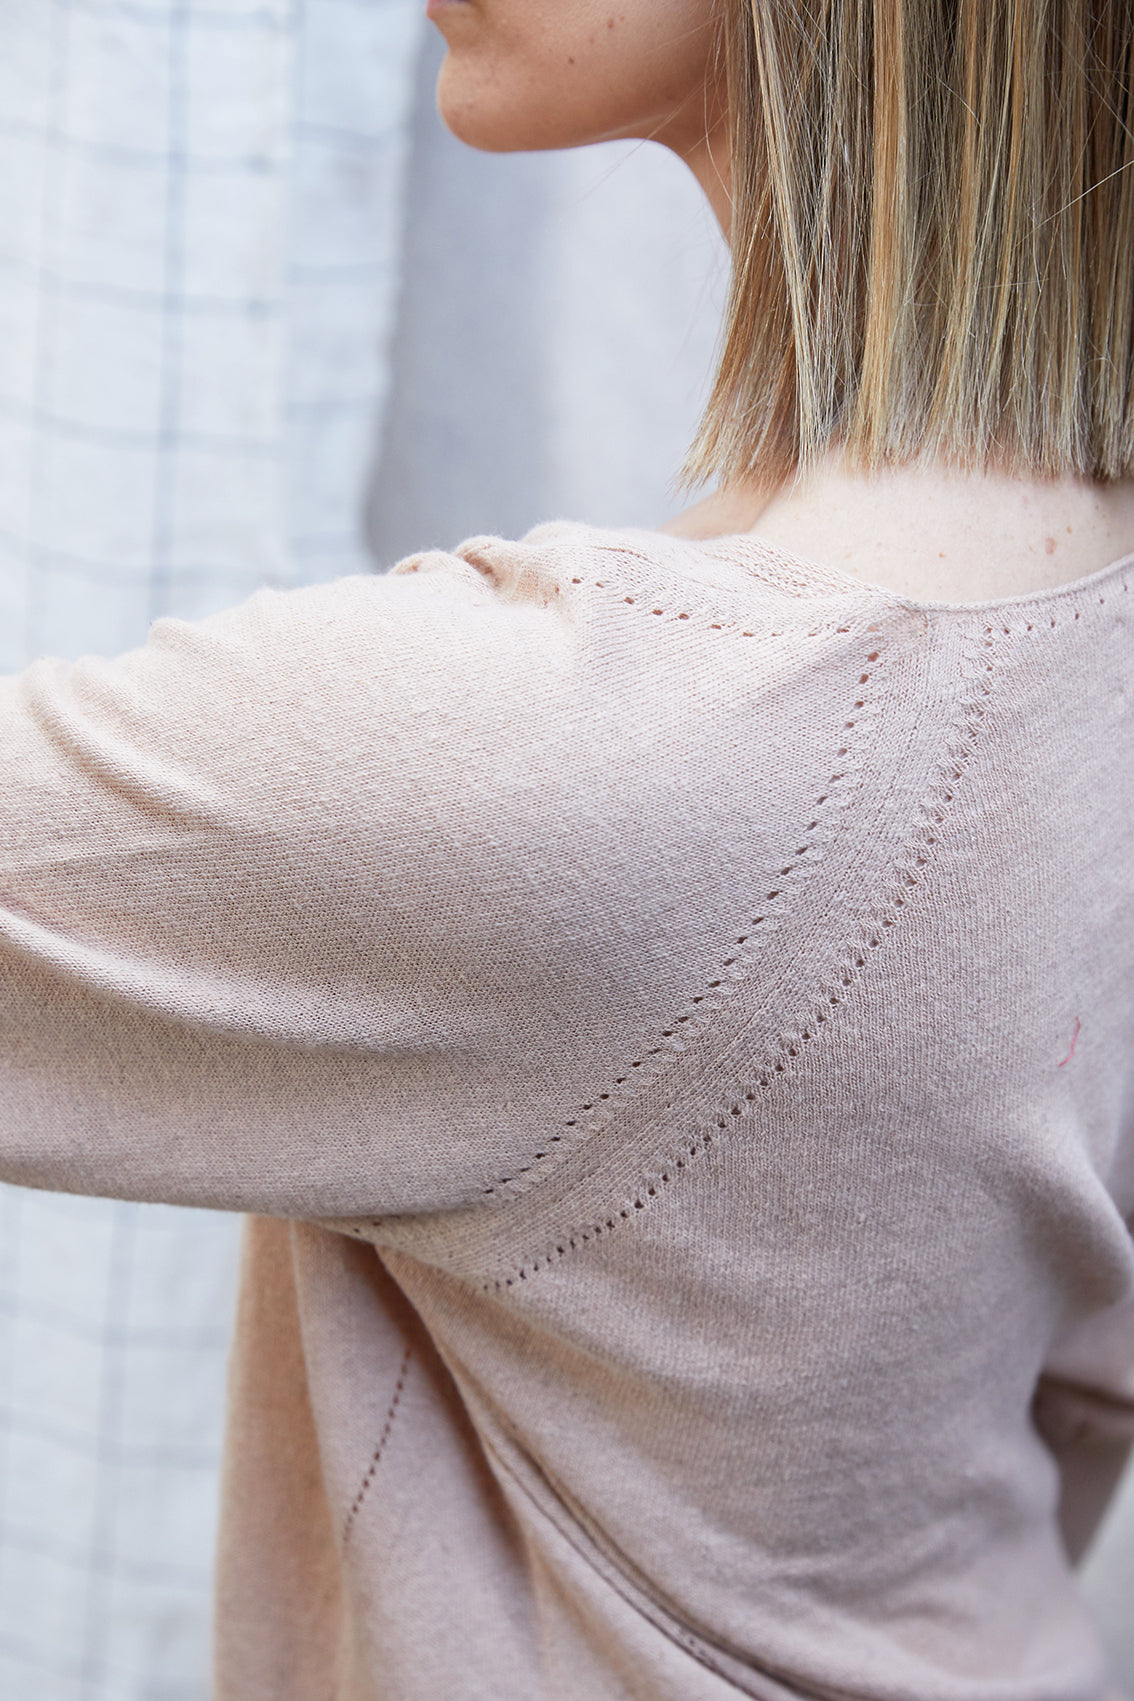 V Knit Light Sweater - Rosa